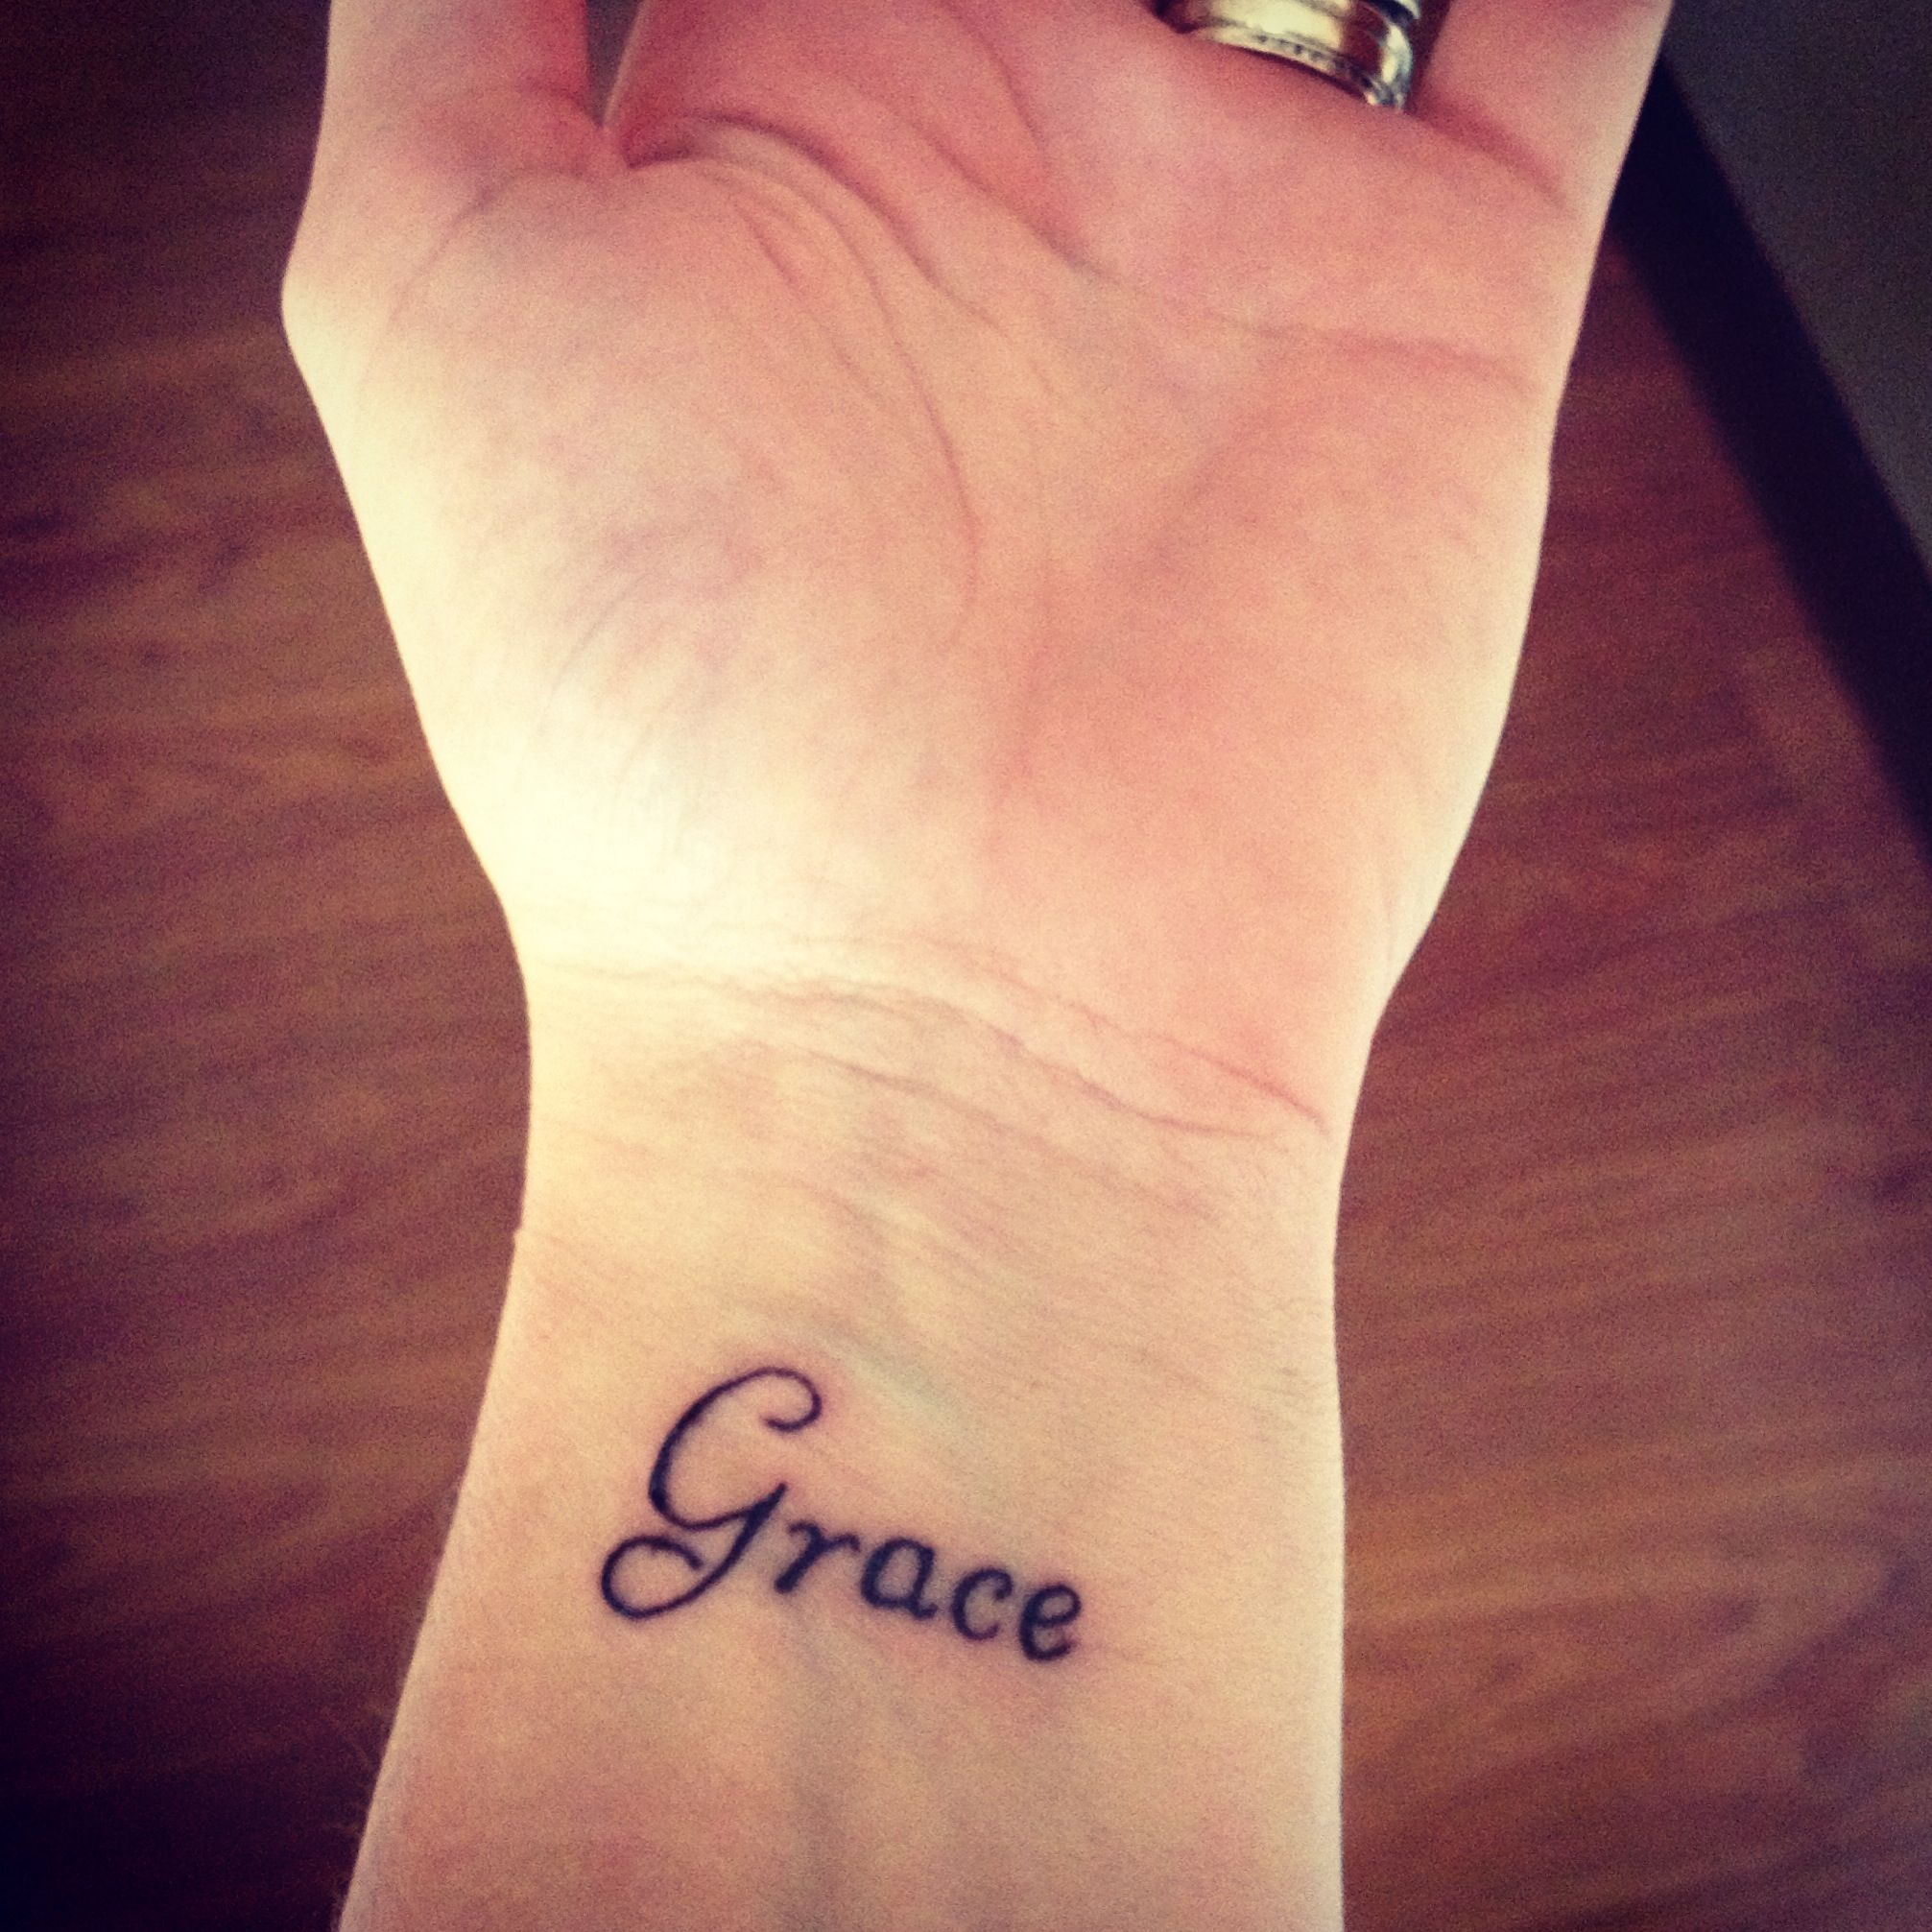 Grace Wrist Tattoo Thinking About It In White With A Different Script Word Tattoos Grace Tattoos Love Wrist Tattoo